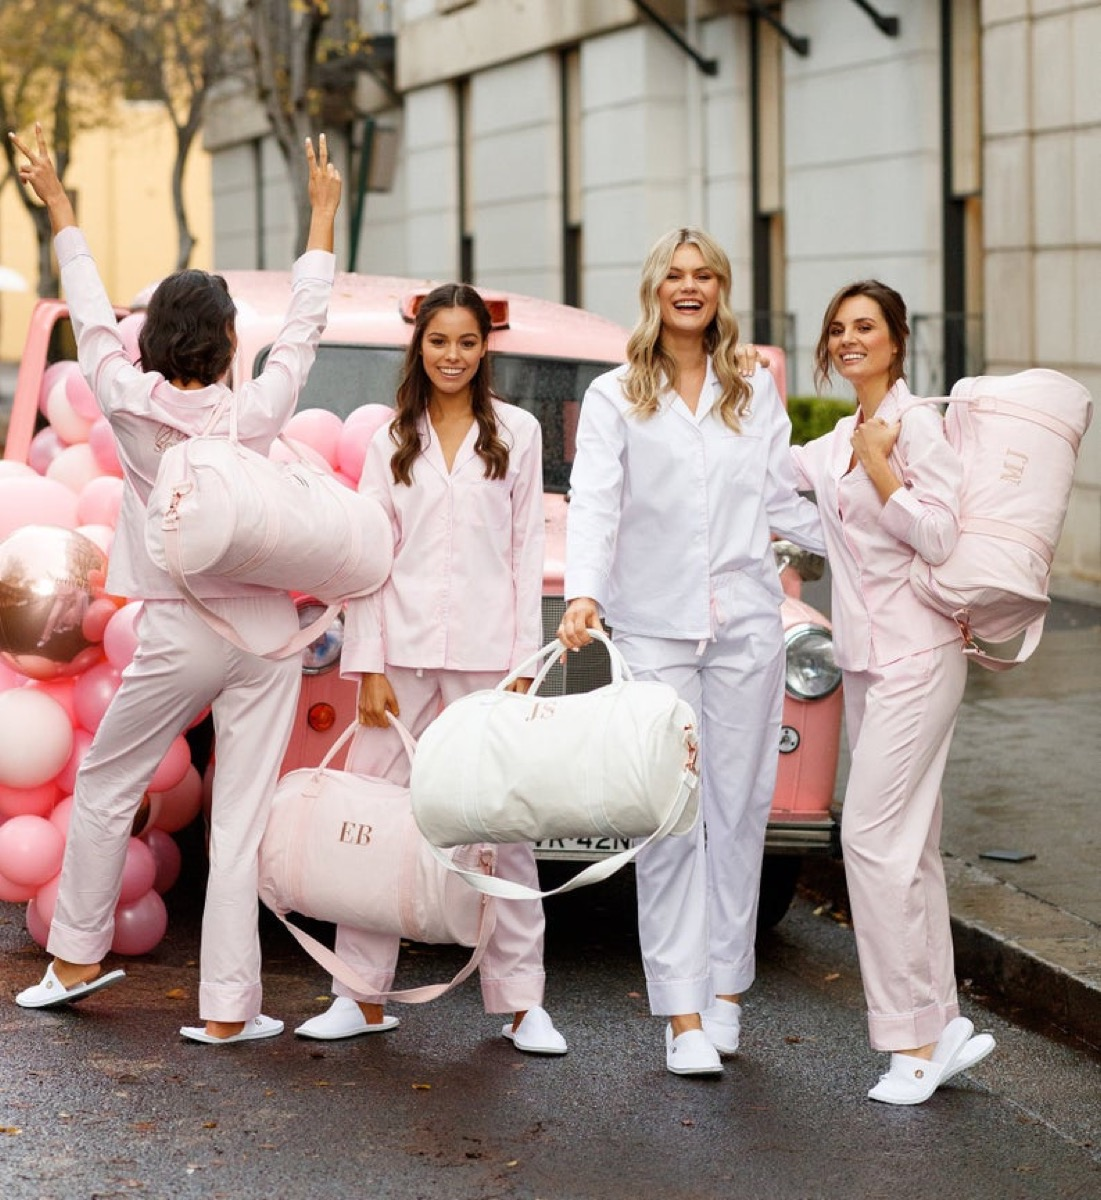 Bridal party with duffle bags